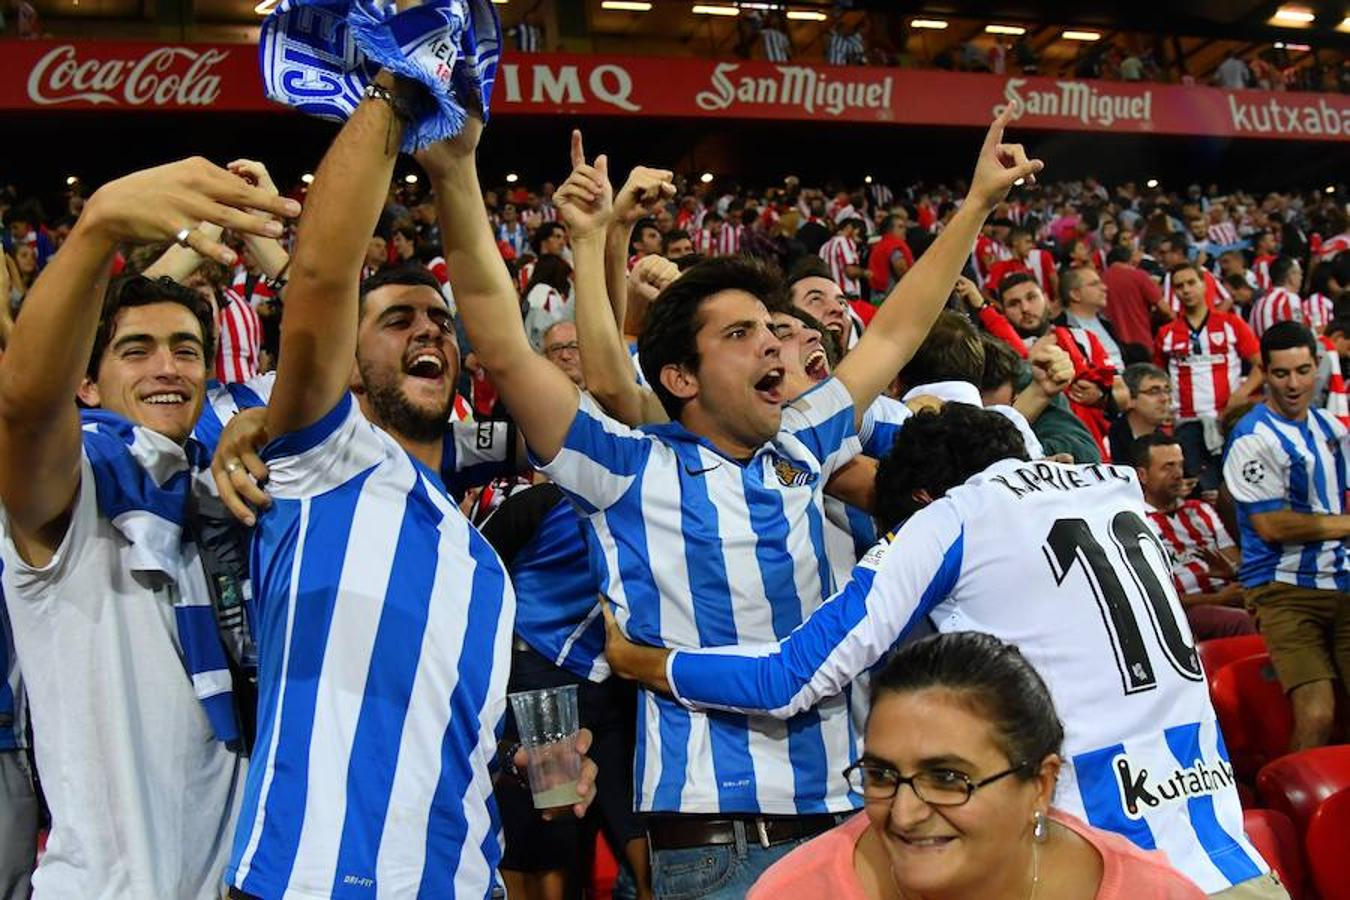 Athletic 1 - Real Sociedad 3